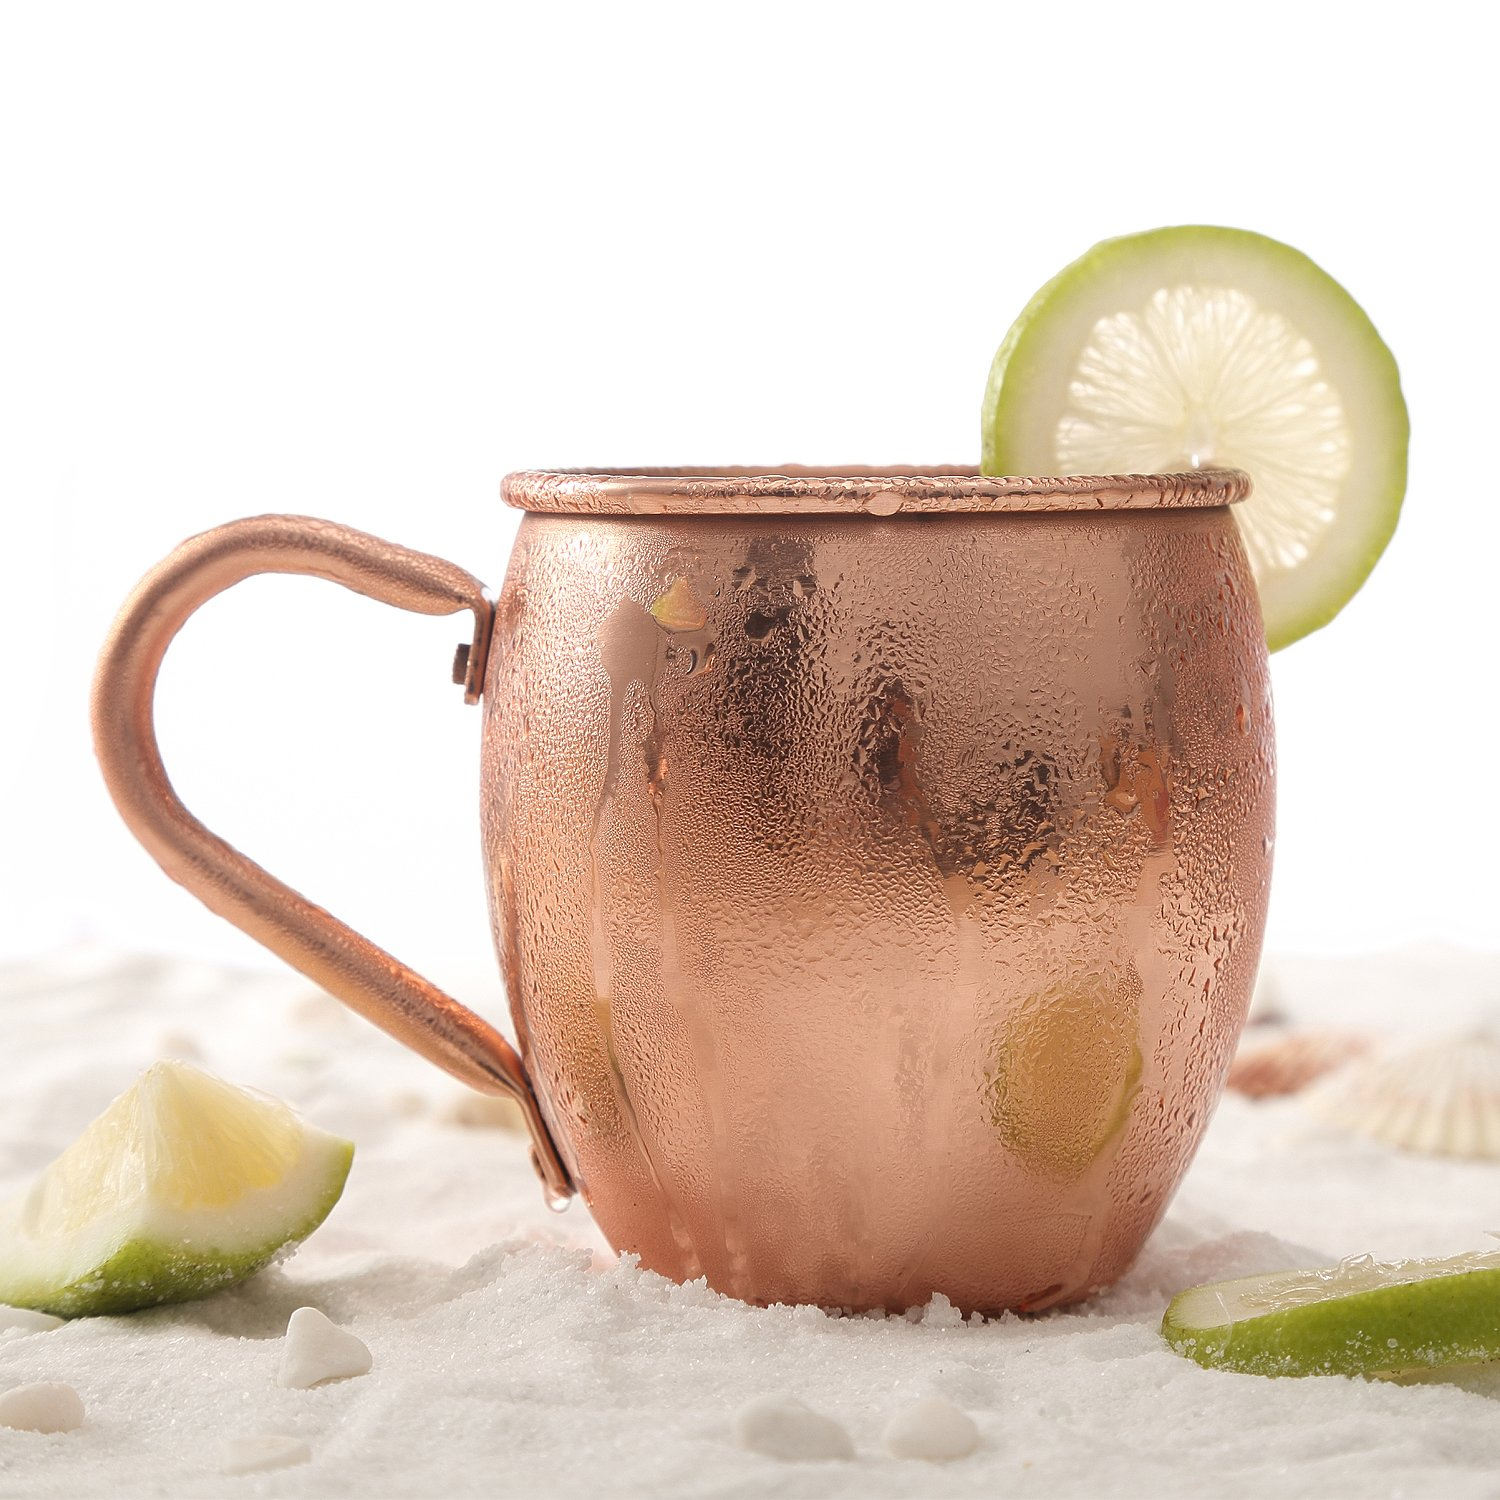 Magisor Moscow Mule Copper Mugs 100/% Handcraft Pure Solid Copper Mug with Brass Handle 18.5 oz 2 Set